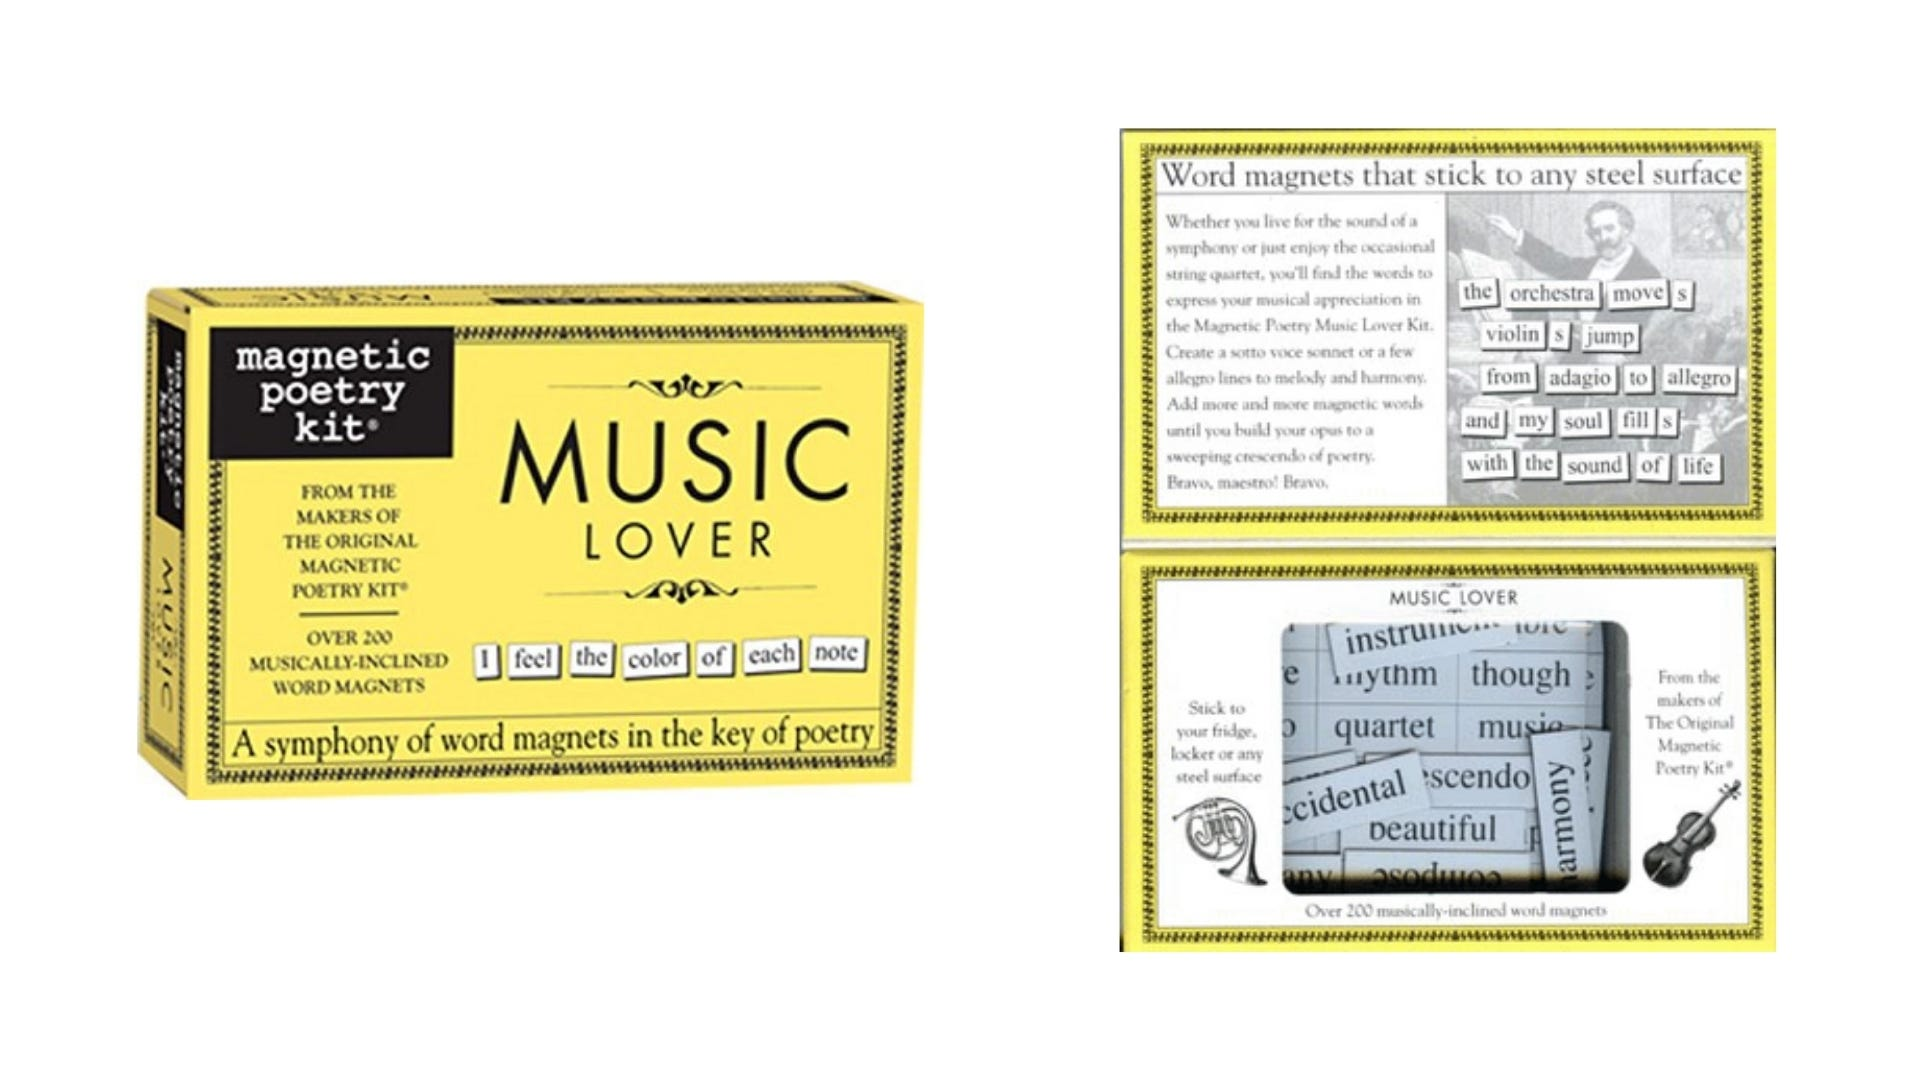 A front and inside view of the Music Magnetic Poetry kit